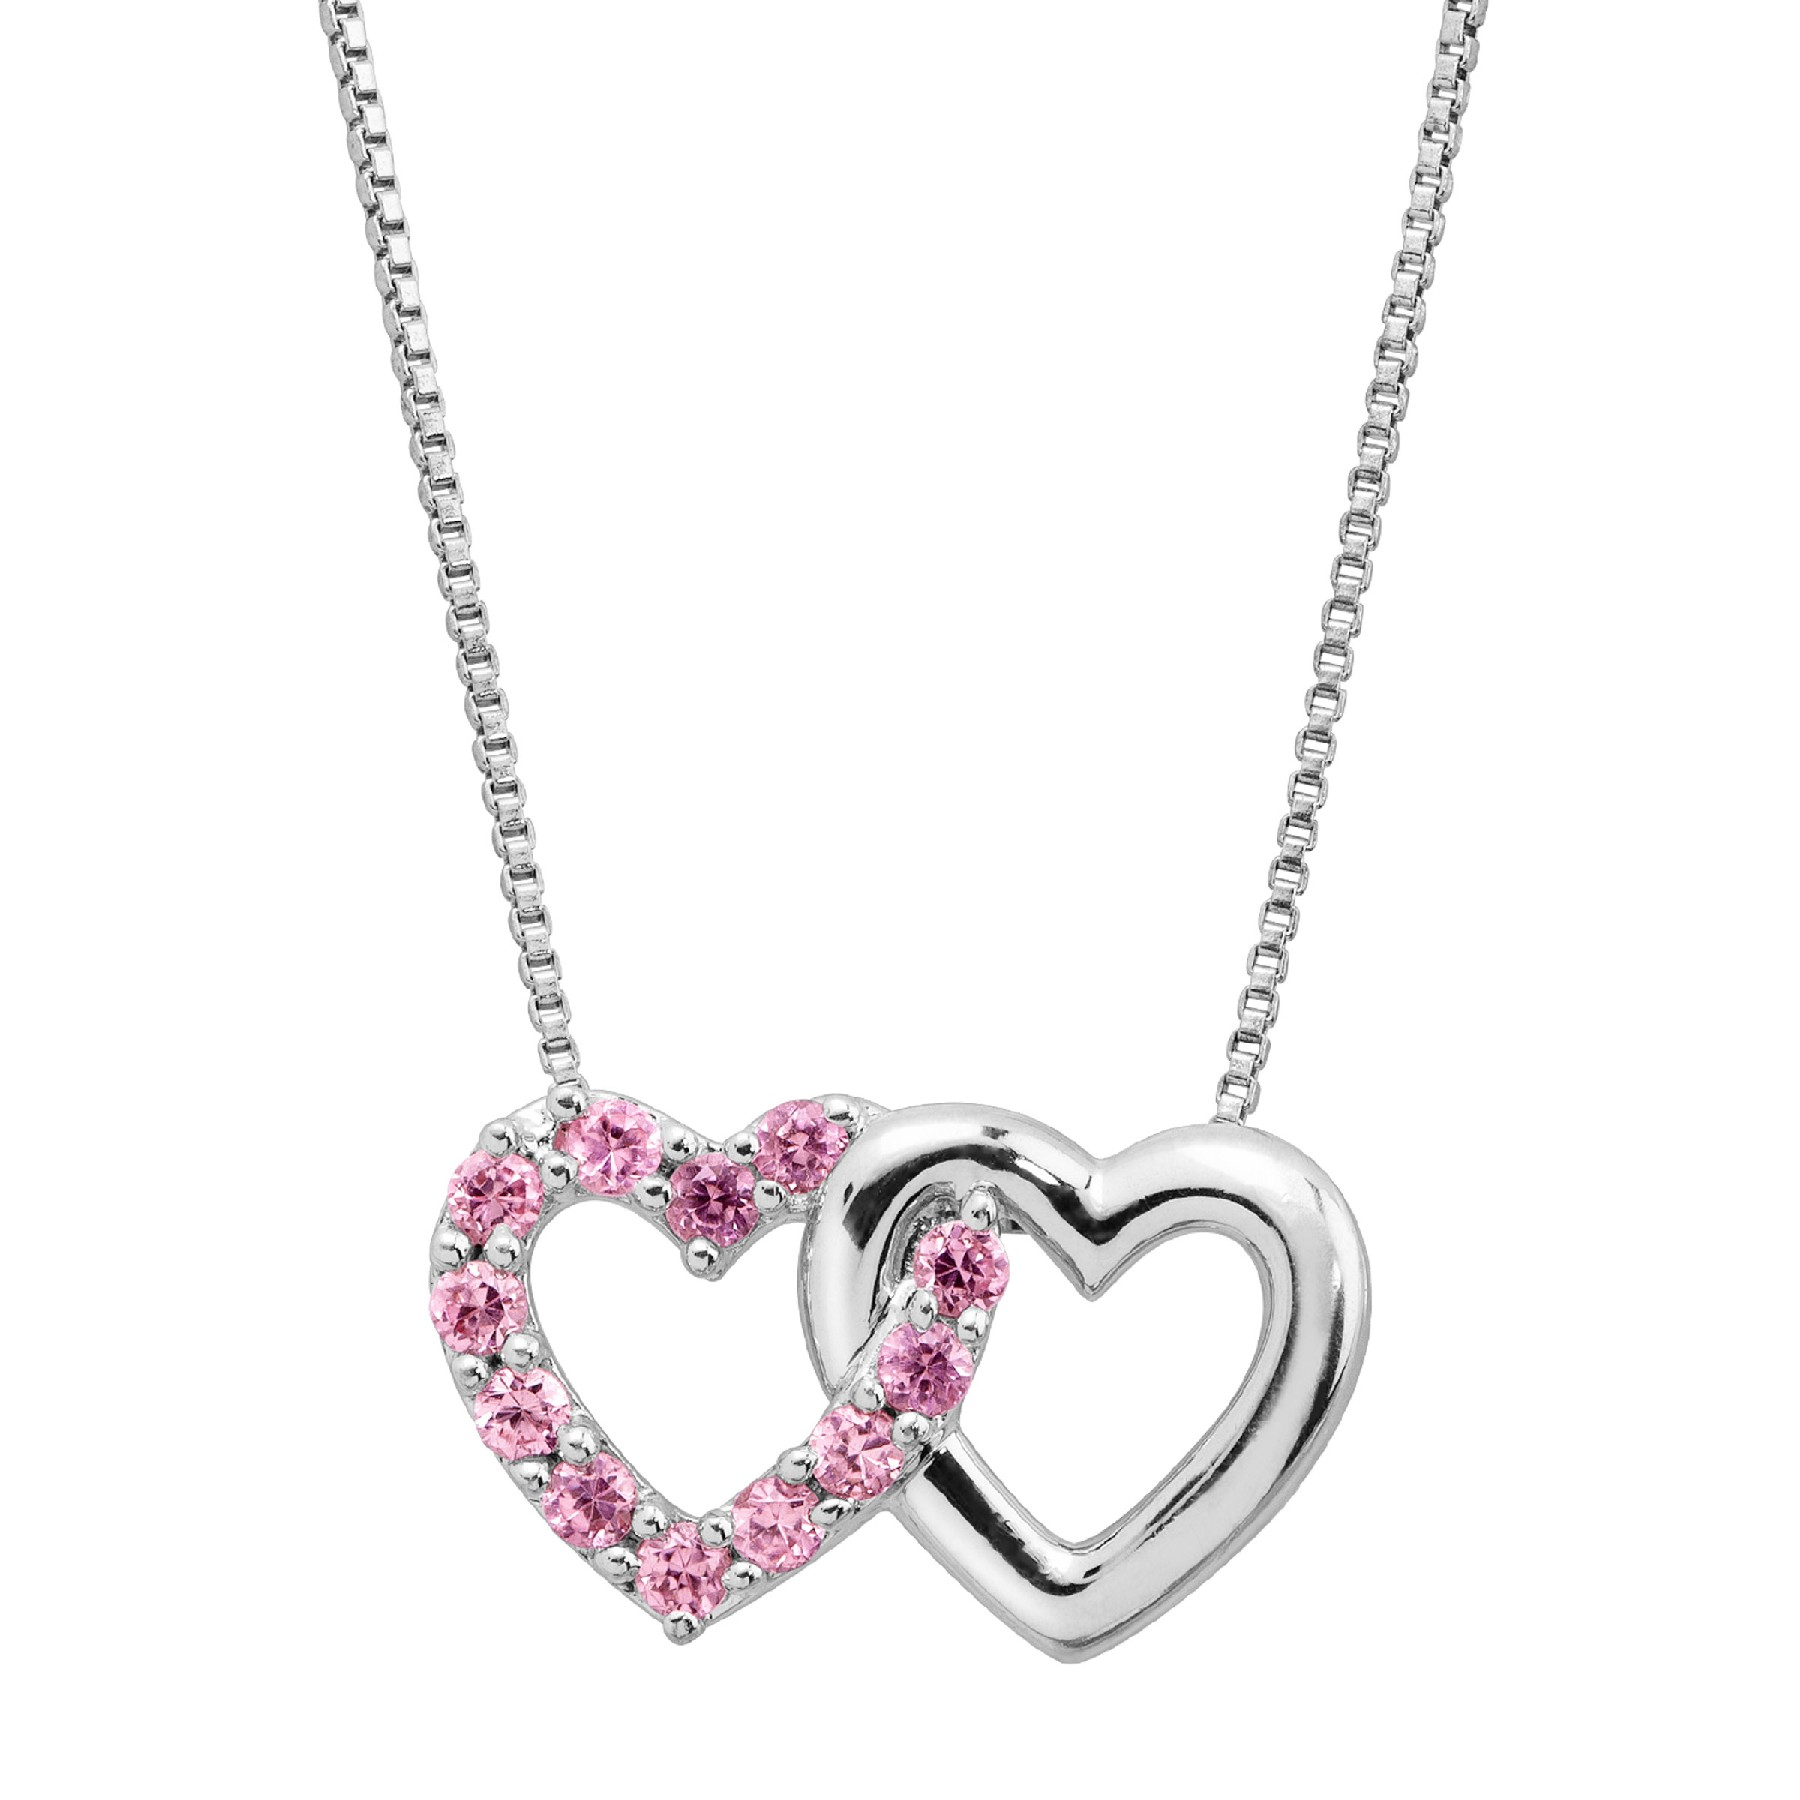 1/4 Ct Created Pink Sapphire Joint Hearts Pendant In Sterling Silver Intended For Latest Joined Hearts Chain Necklaces (View 10 of 25)